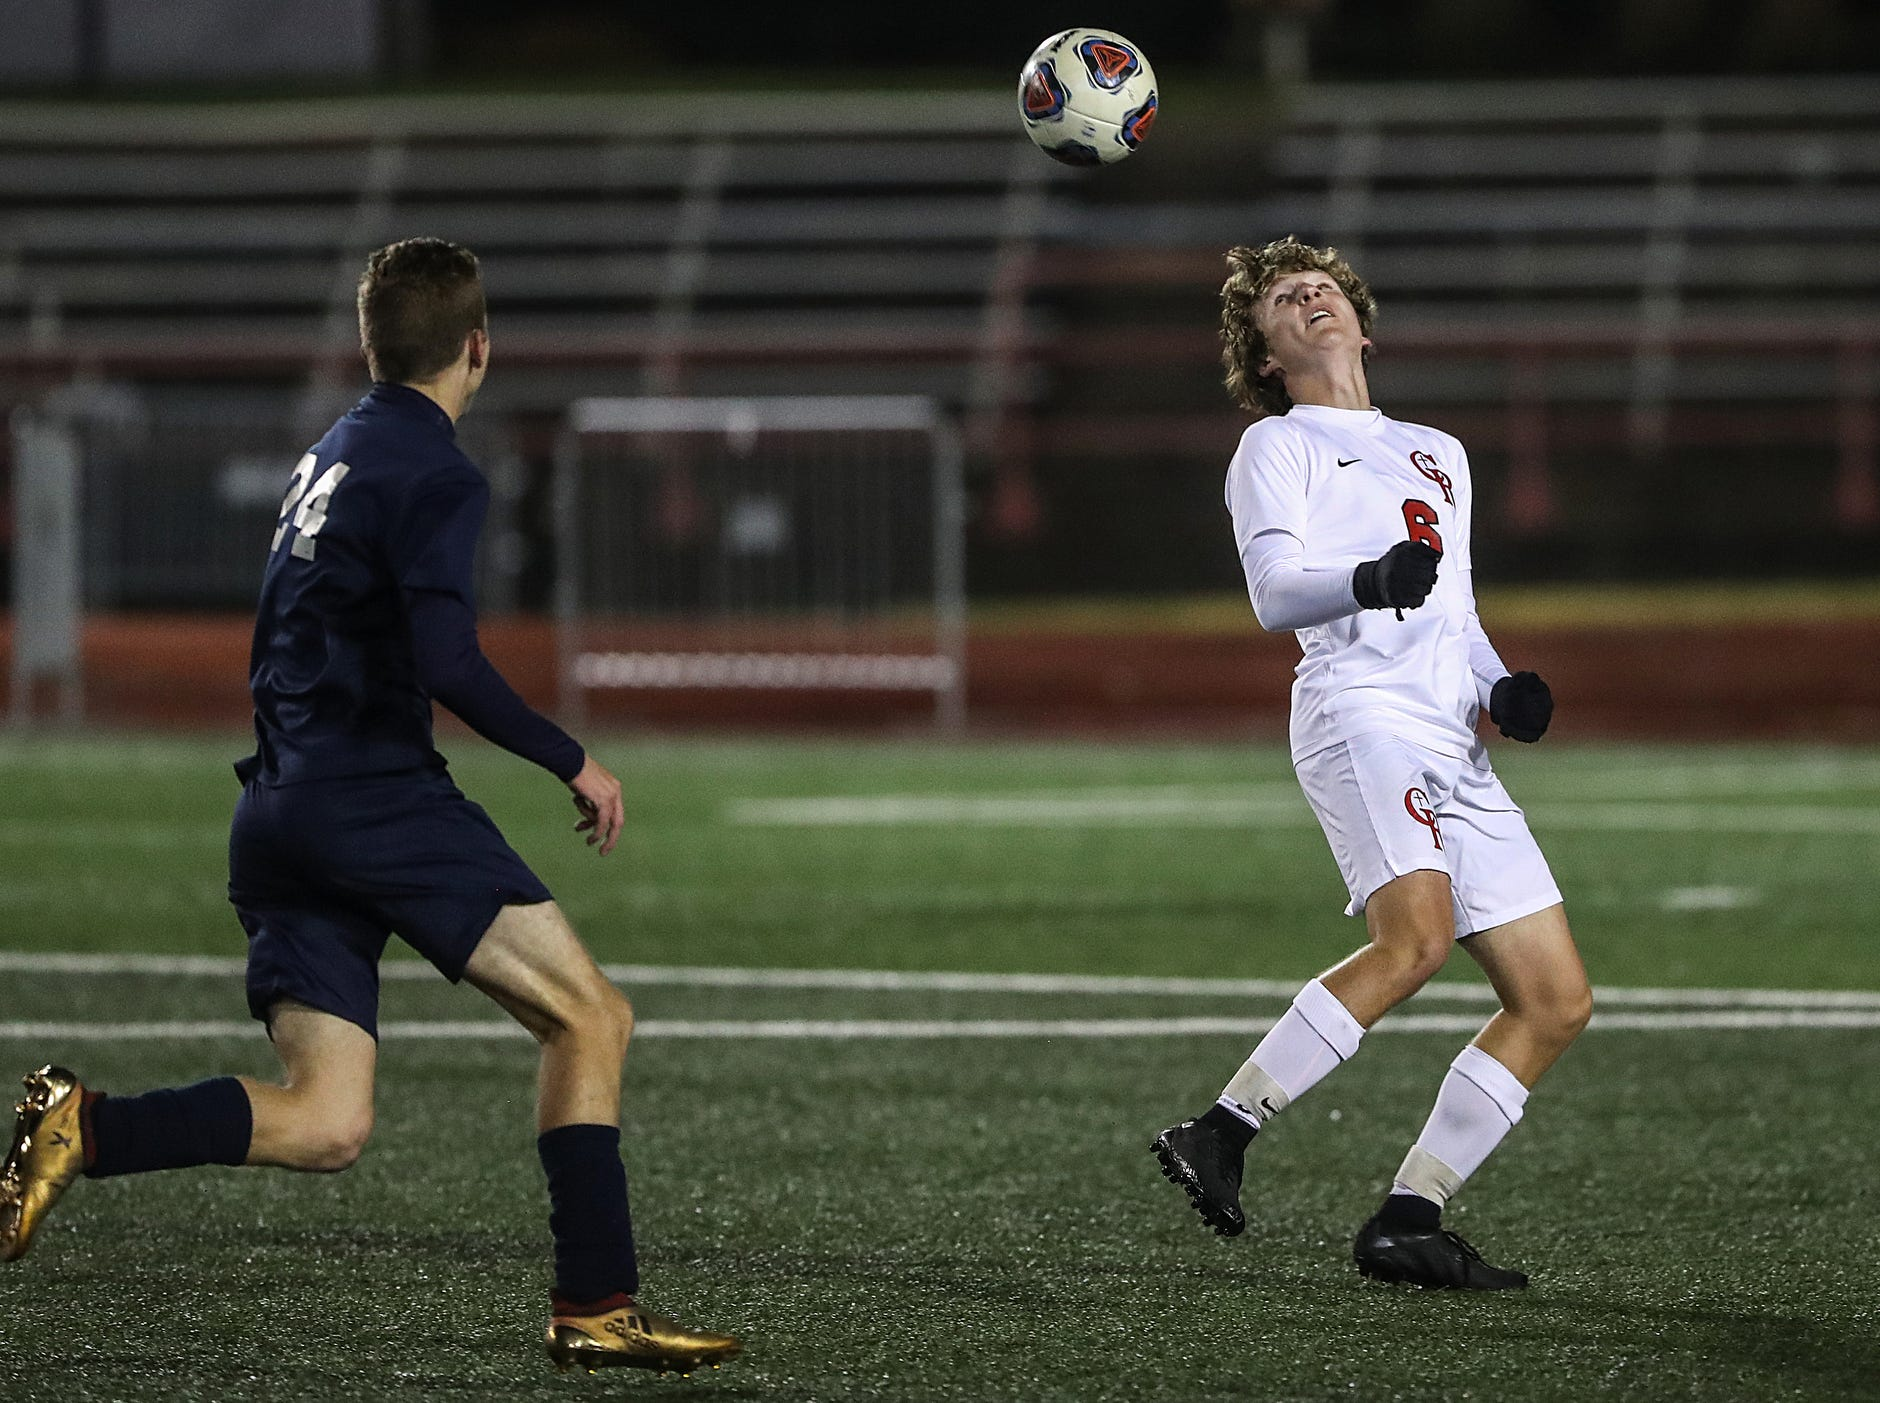 At right, Cardinal Ritter Raiders Luke Lauer (6) during the second half of IHSAA class 2A state finals at IUPUI's Michael A. Carroll Stadium in Indianapolis, Friday, Oct. 26, 2018. Hammond Bishop Noll defeated Cardinal Ritter, 1-0.